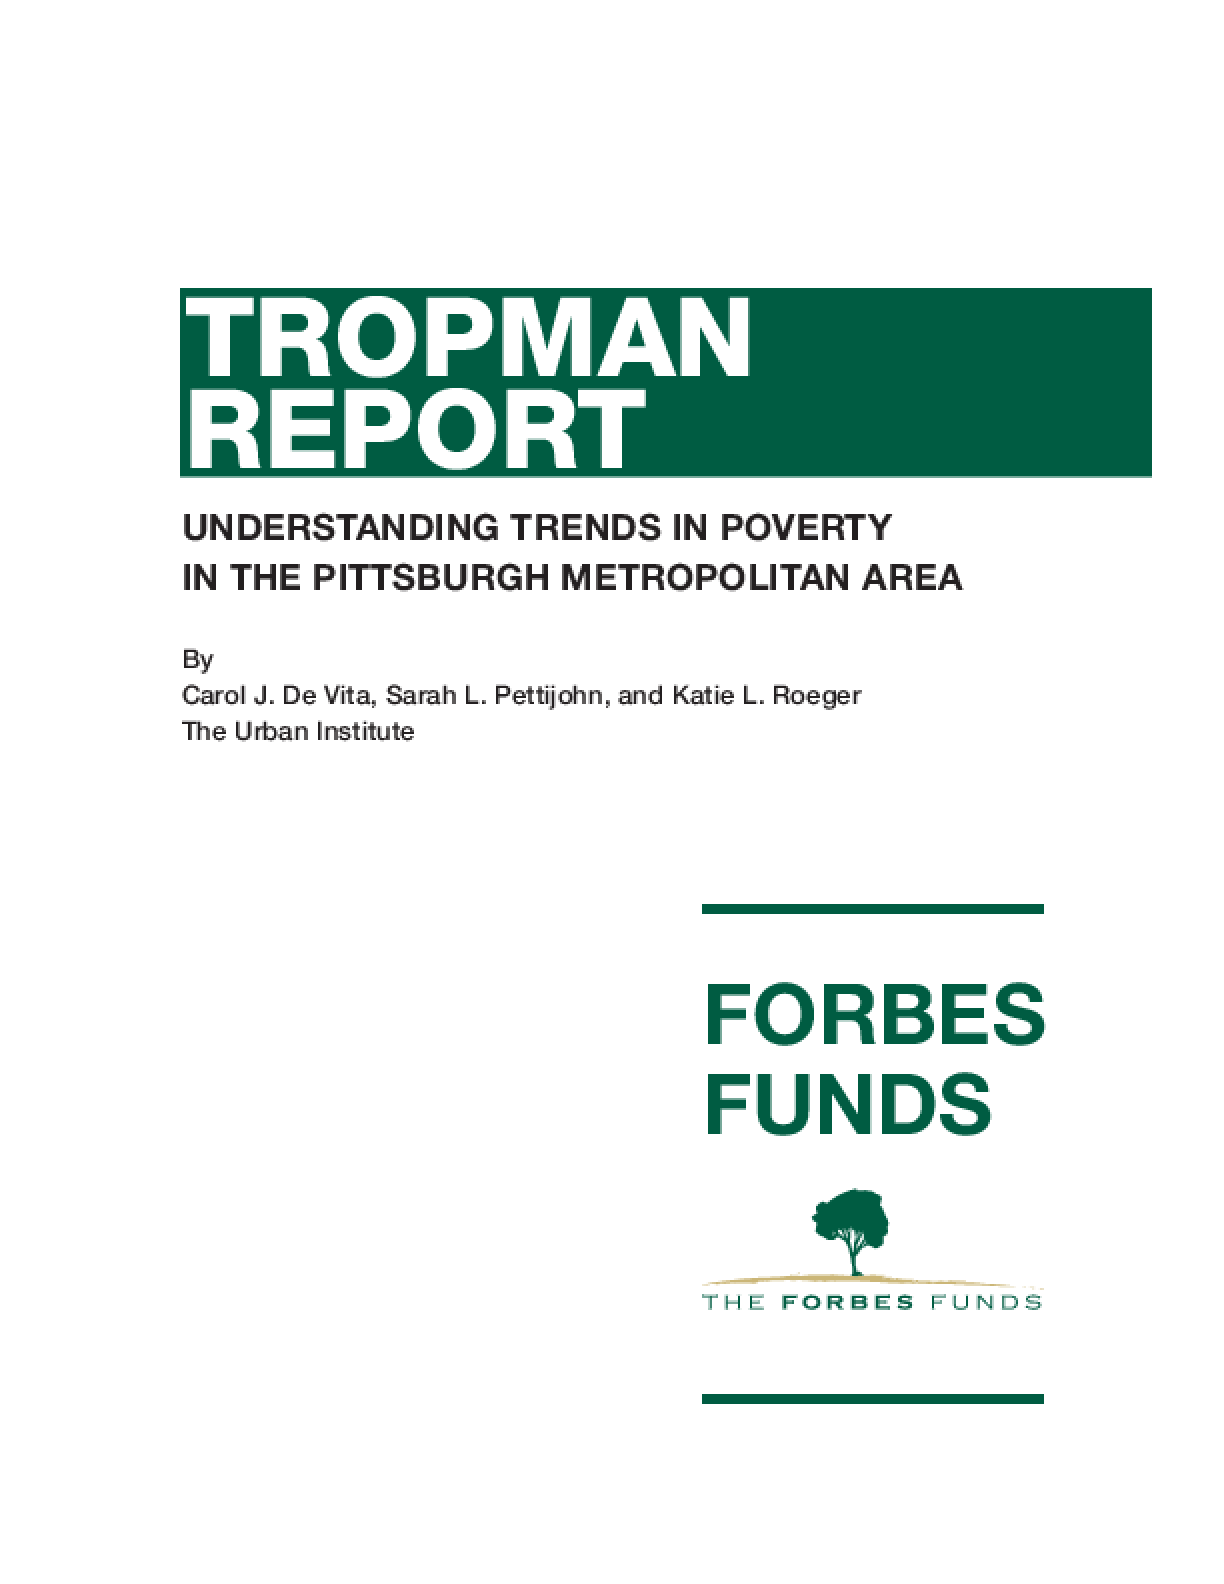 Understanding Trends in Poverty in the Pittsburgh Metropolitan Area